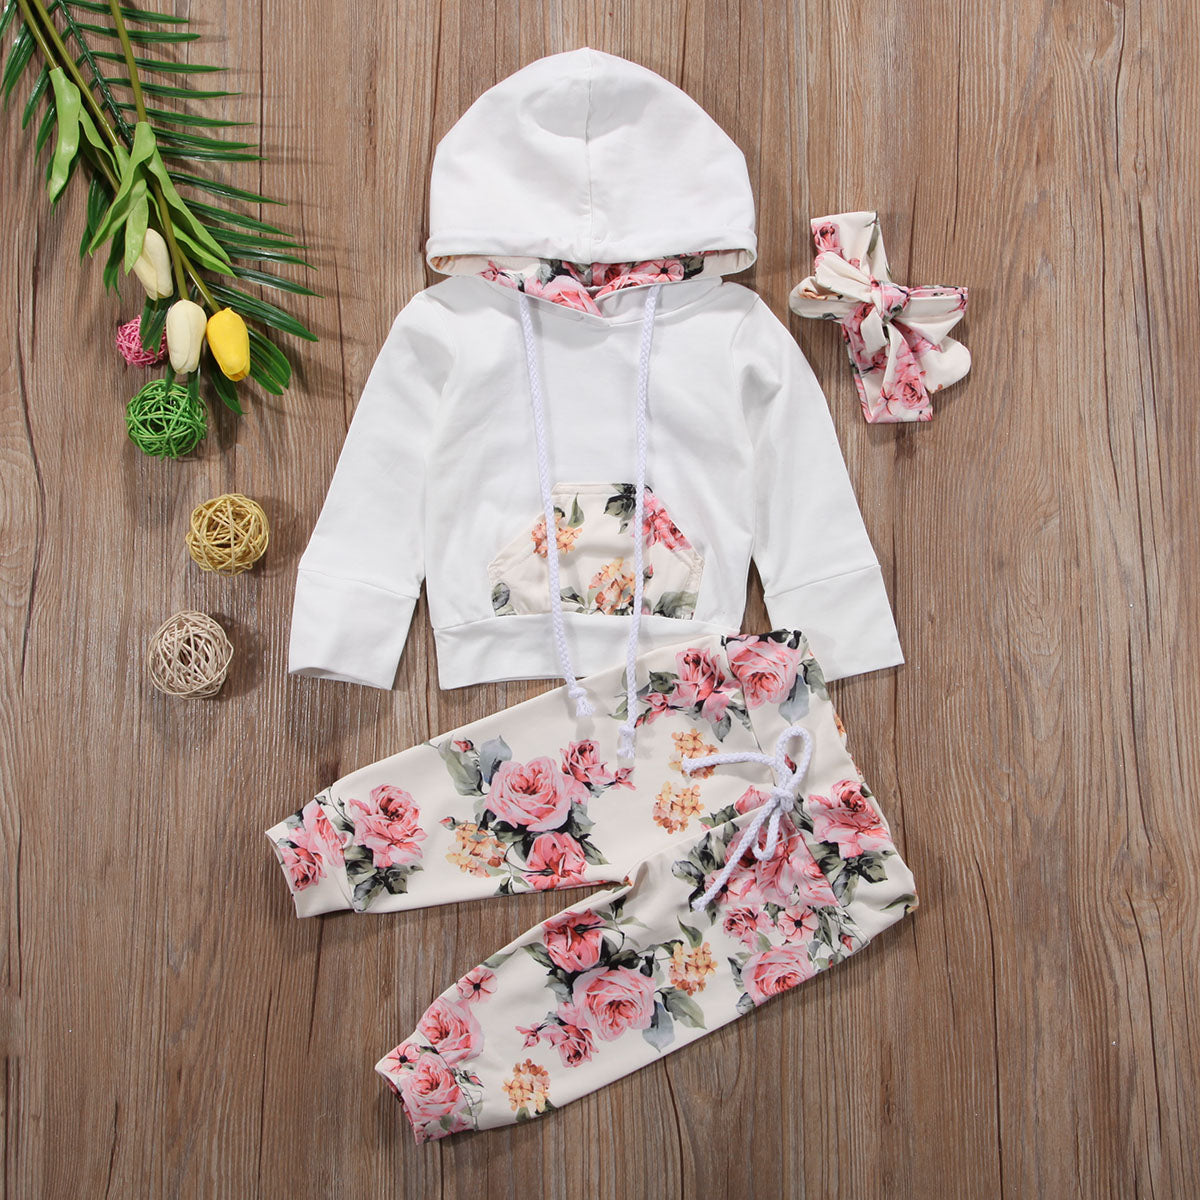 Newbabychic New Infant Baby Girls Clothes Set Long Sleeve Hooded Sweatshirt Tops+Floral Pants Outfits Set Tracksuit 0-24M